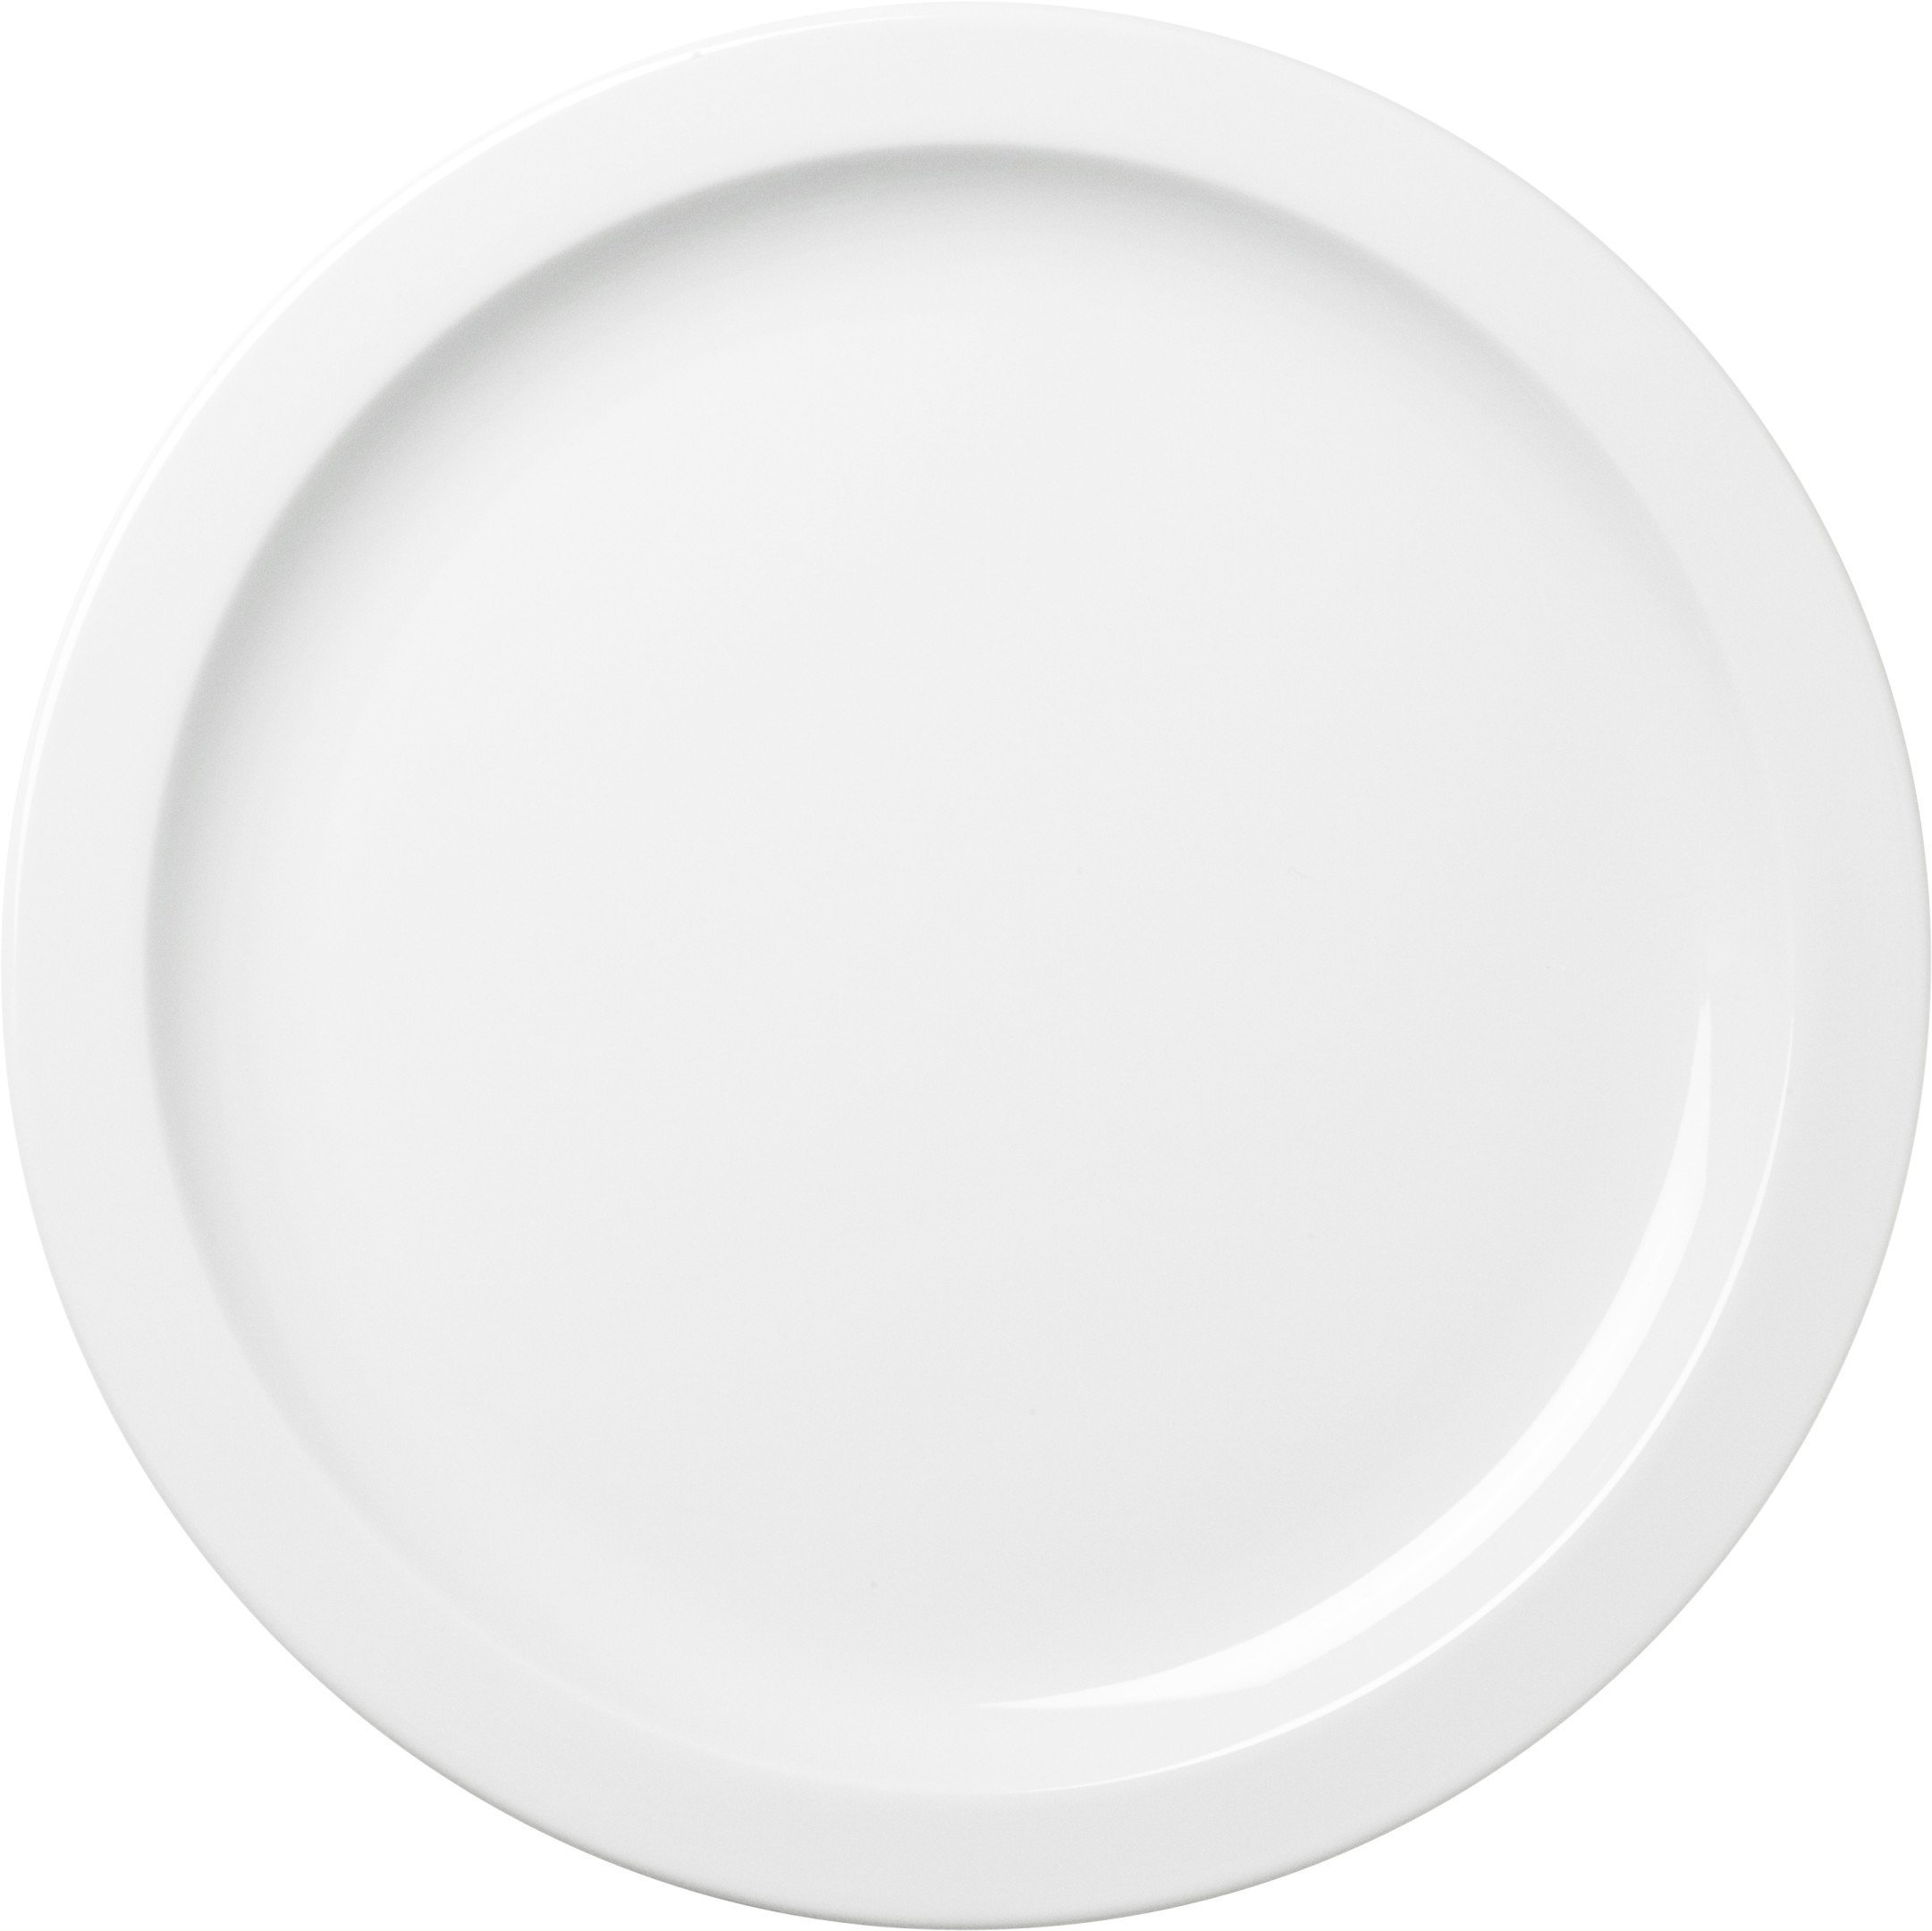 New Norm Plate White Ø 28,5cm by Norm Architects for Menu